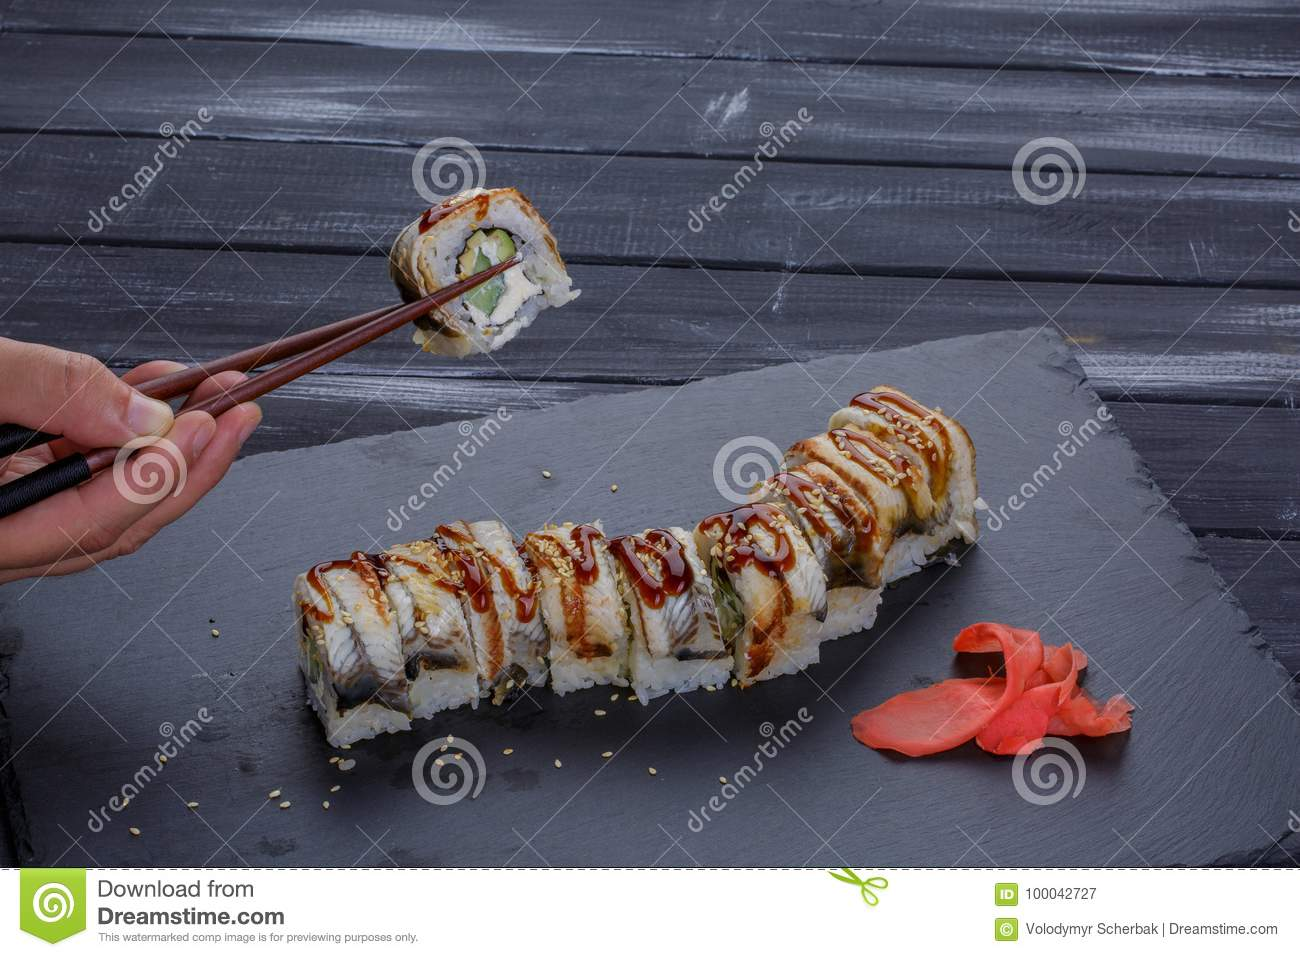 Sushi - Roll on a black plate with man hand holding chopsticks over black background